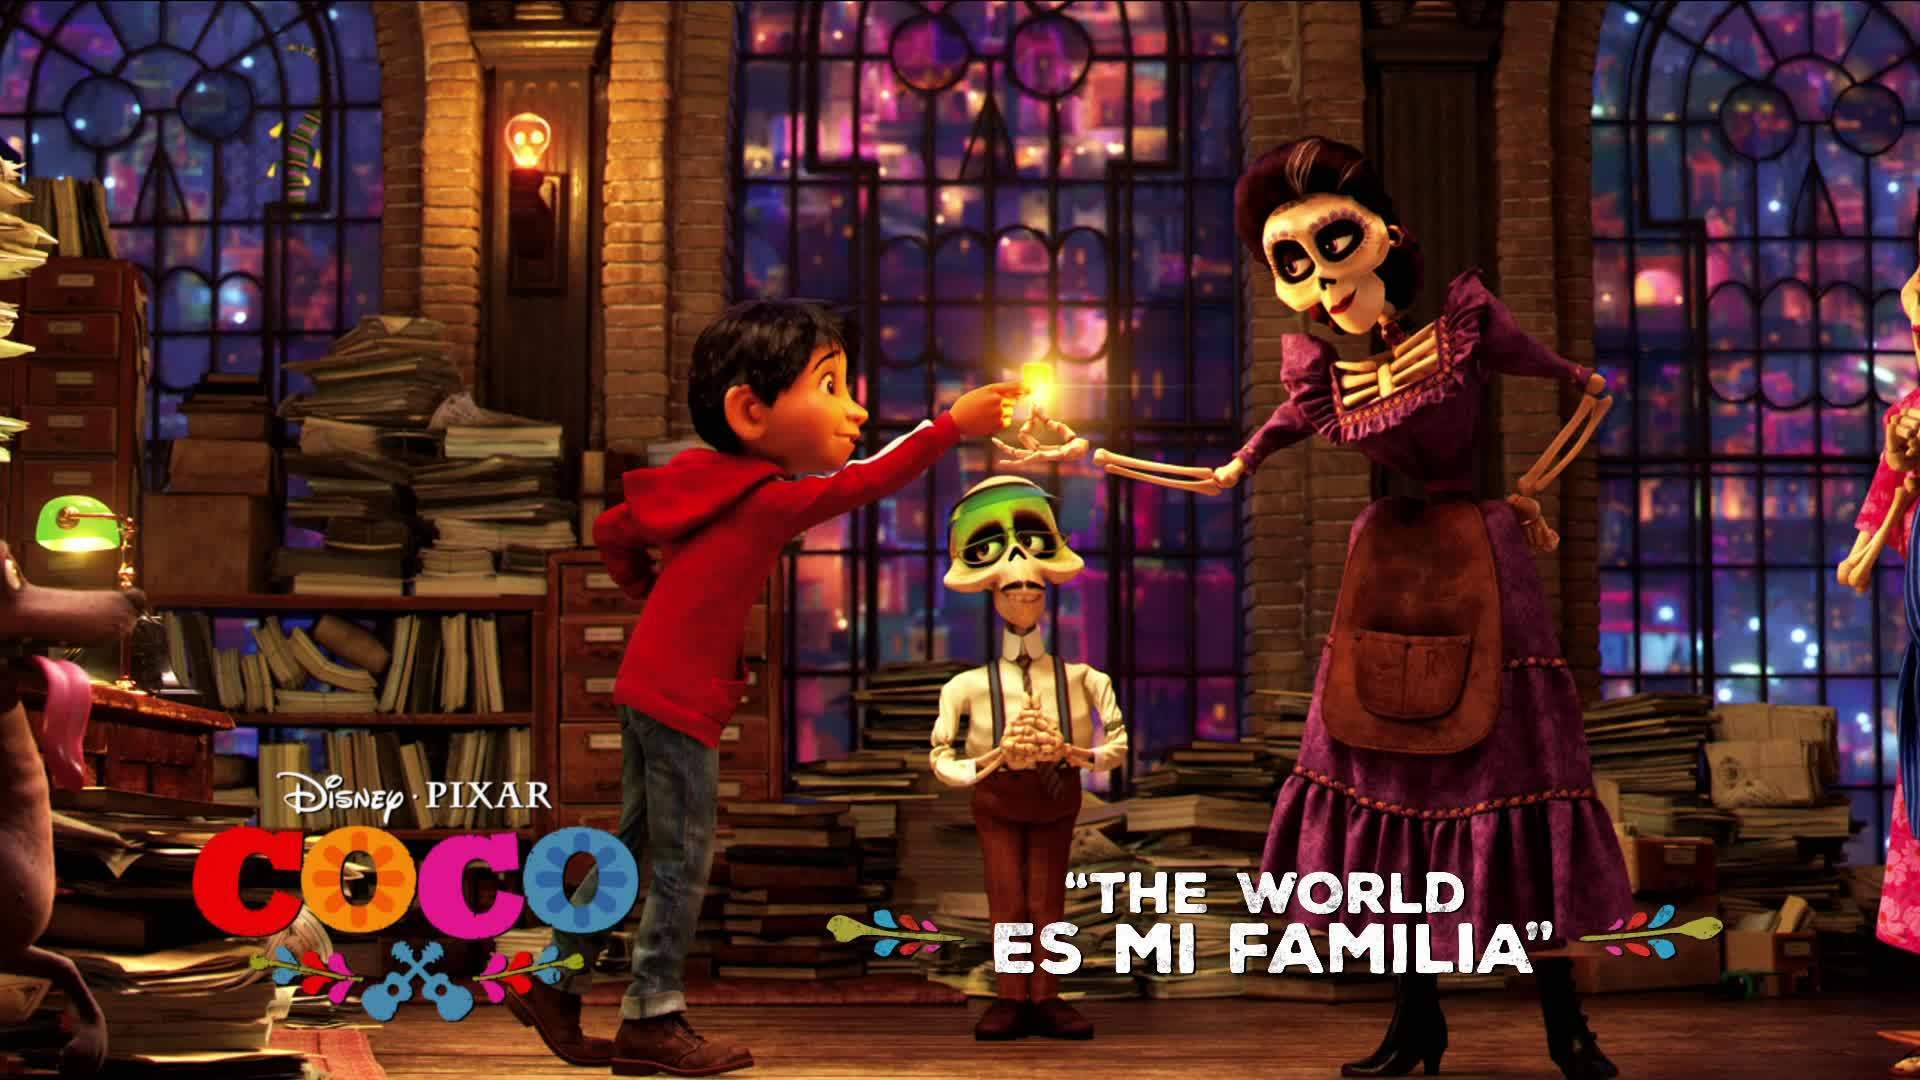 Coco Song Snippet: The World Es Mi Familia